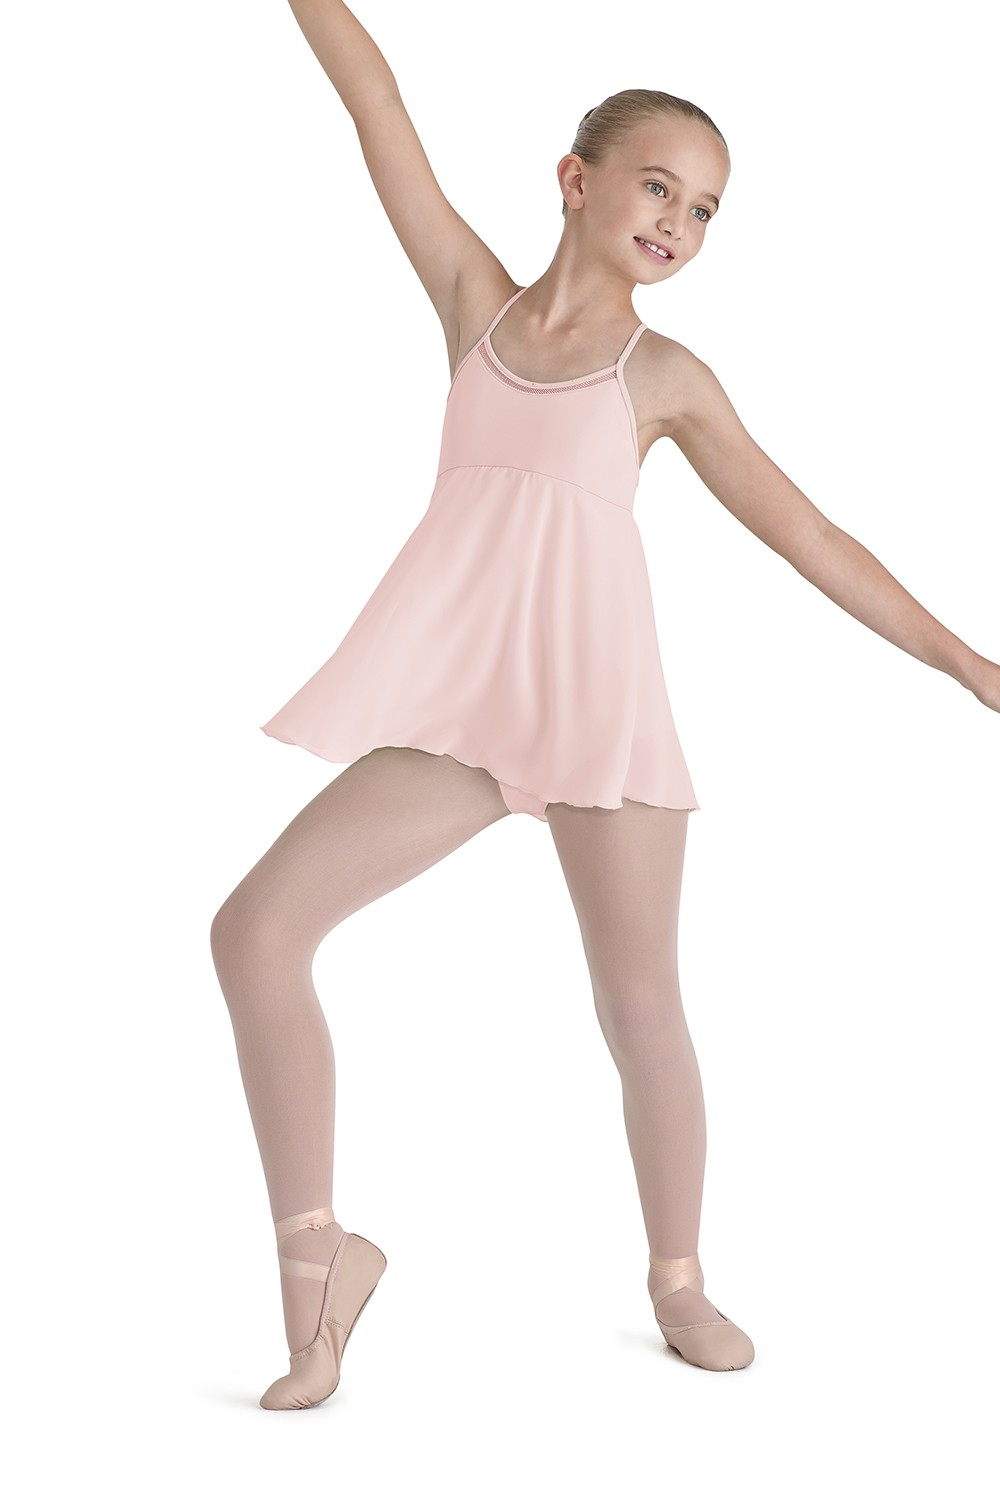 Racerback Dress Children's Dance Leotards